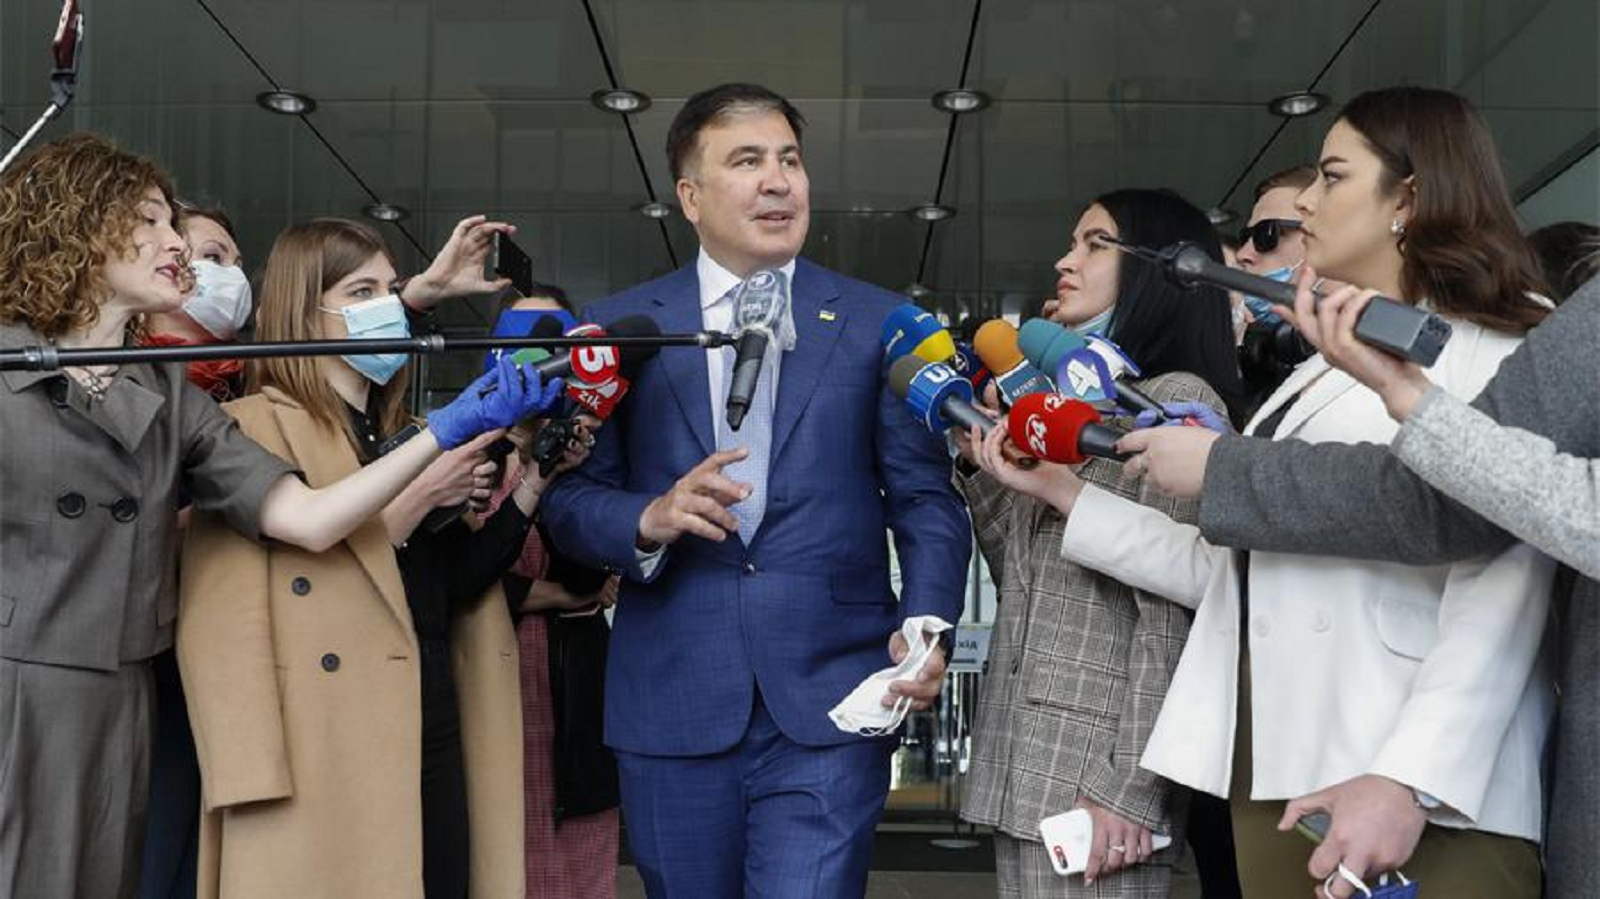 Former President of Georgia and ex-Governor of the Odessa region Mikhail Saakashvili announced his upcoming appointment as head of the Executive Committee of the National Council of reforms of Ukraine. He told Deutsche Welle on May 6